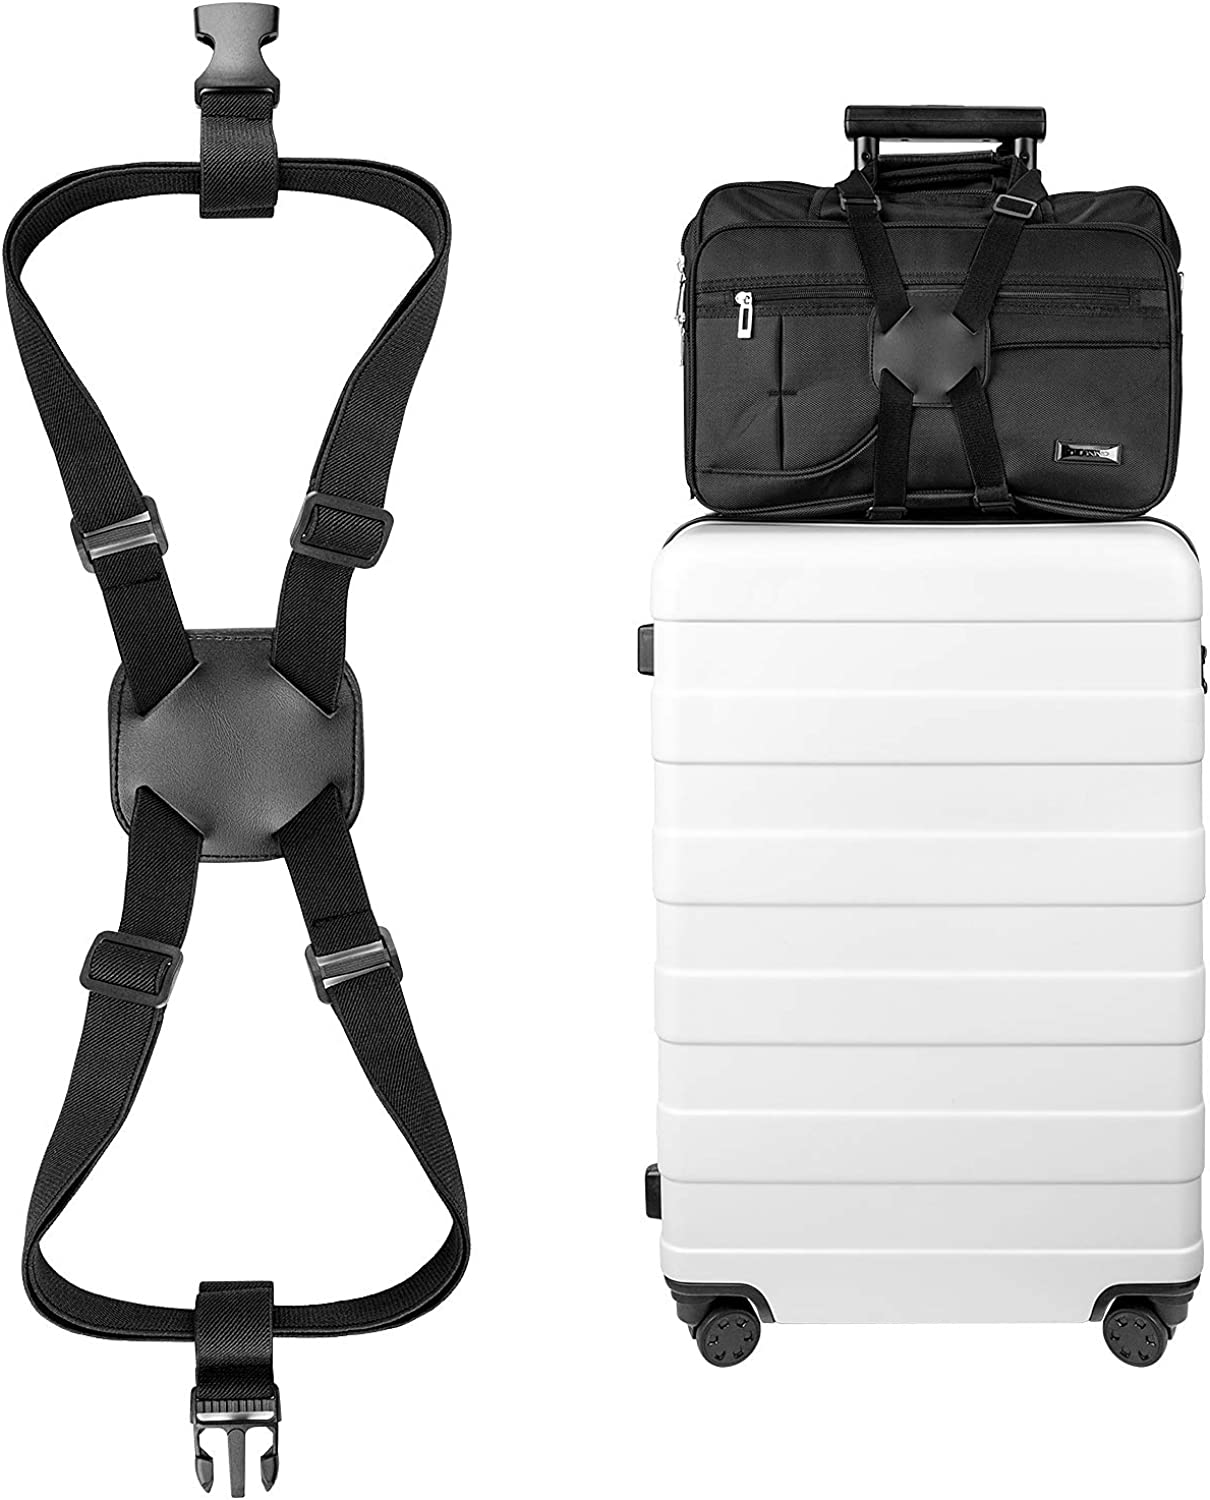 Luxebell Add A Bag Luggage Straps, Suitcase Belt Travel Accessories